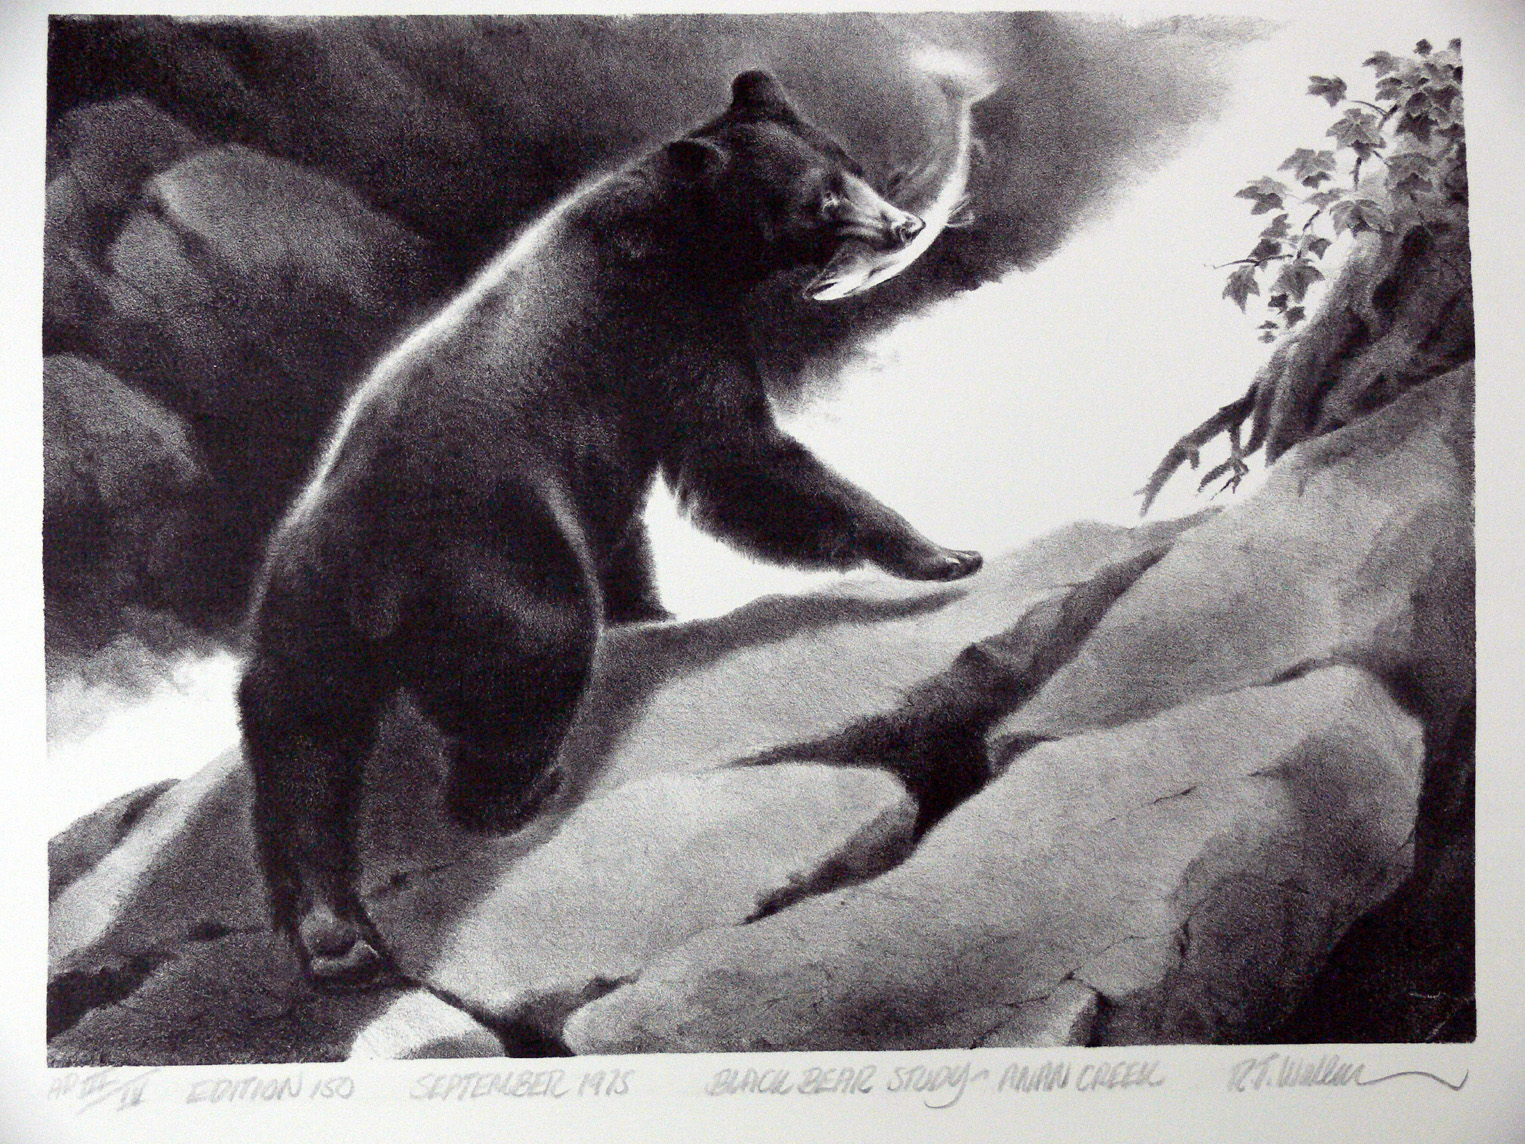 Black Bear Study, stone lithograph by R.T. Wallen